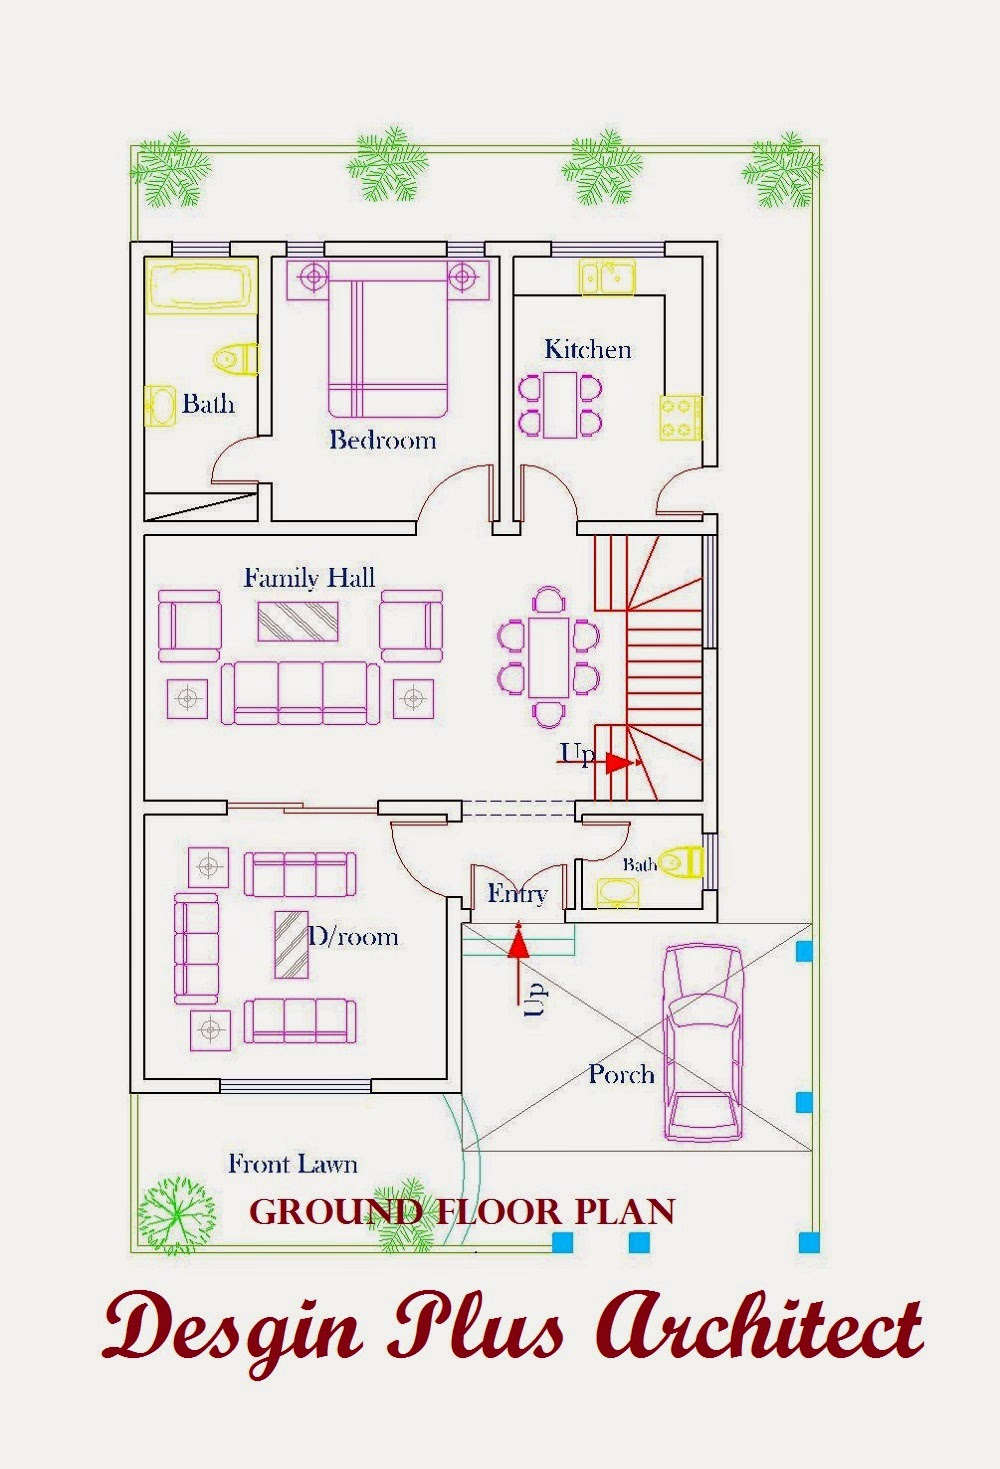 Home plans in pakistan home decor architect designer for Most popular house plan